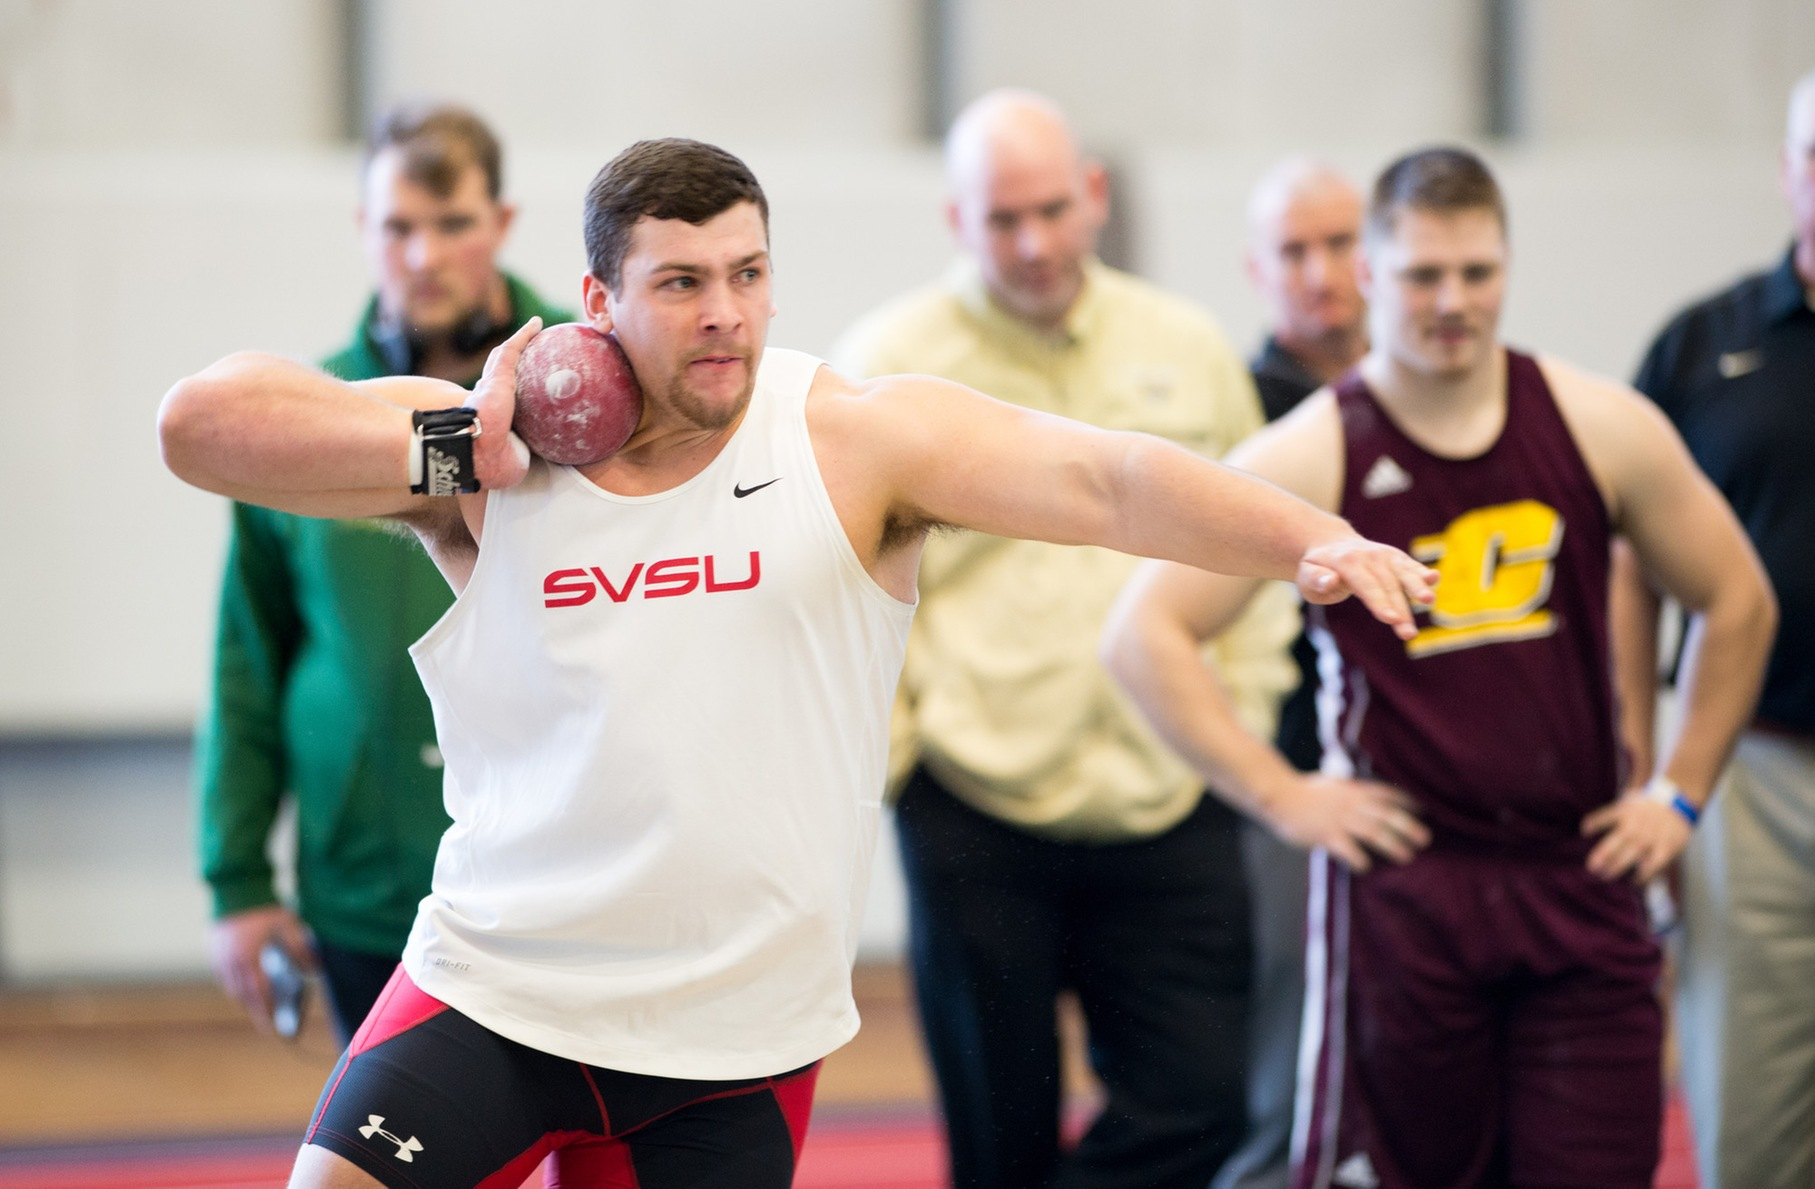 Cardinals host SVSU Tune-up to round-out regular season competition